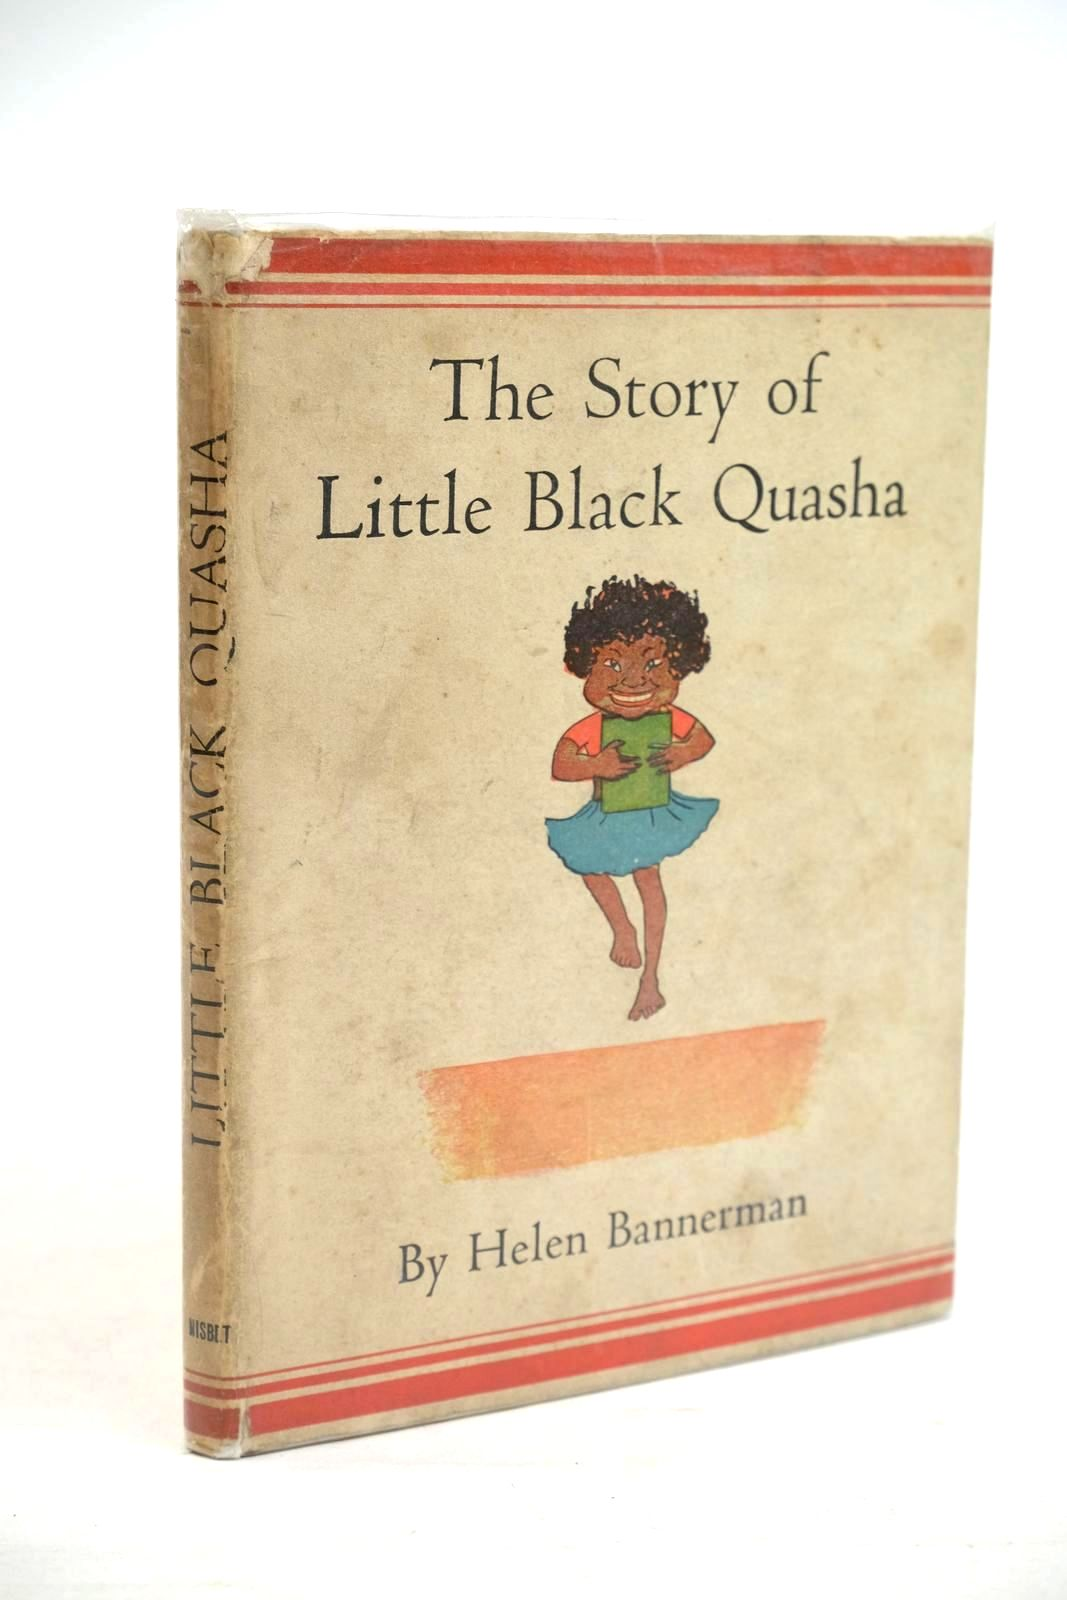 Photo of THE STORY OF LITTLE BLACK QUASHA written by Bannerman, Helen illustrated by Bannerman, Helen published by Nisbet & Co. Ltd. (STOCK CODE: 1320377)  for sale by Stella & Rose's Books